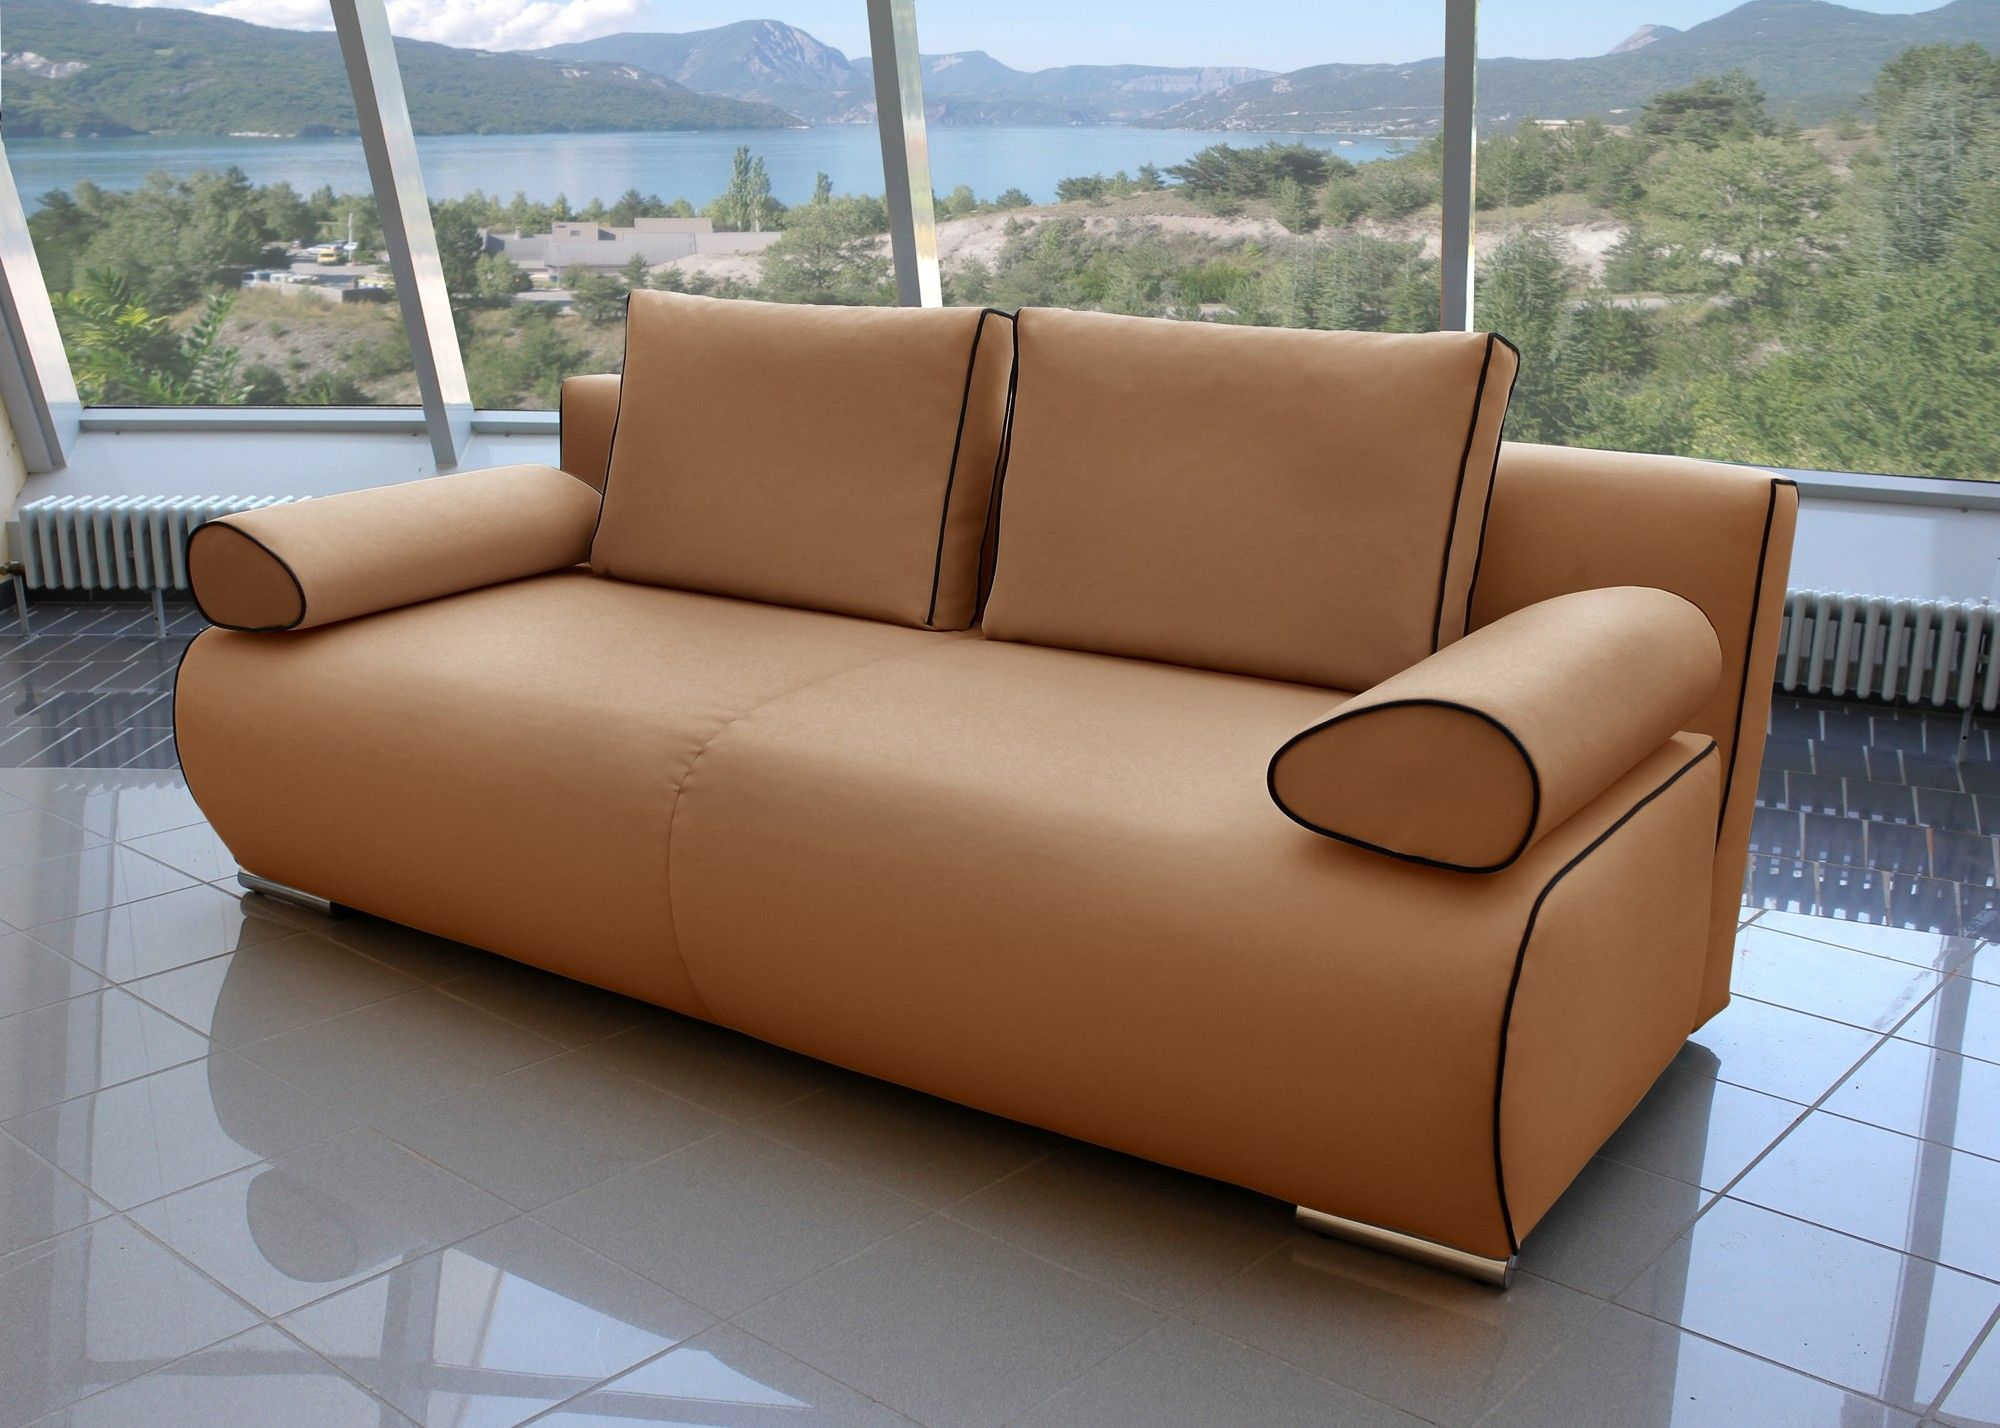 Bettsofa Kapua Design Schlafsofa Camel mit Schwarz 21541. Buy now at ...